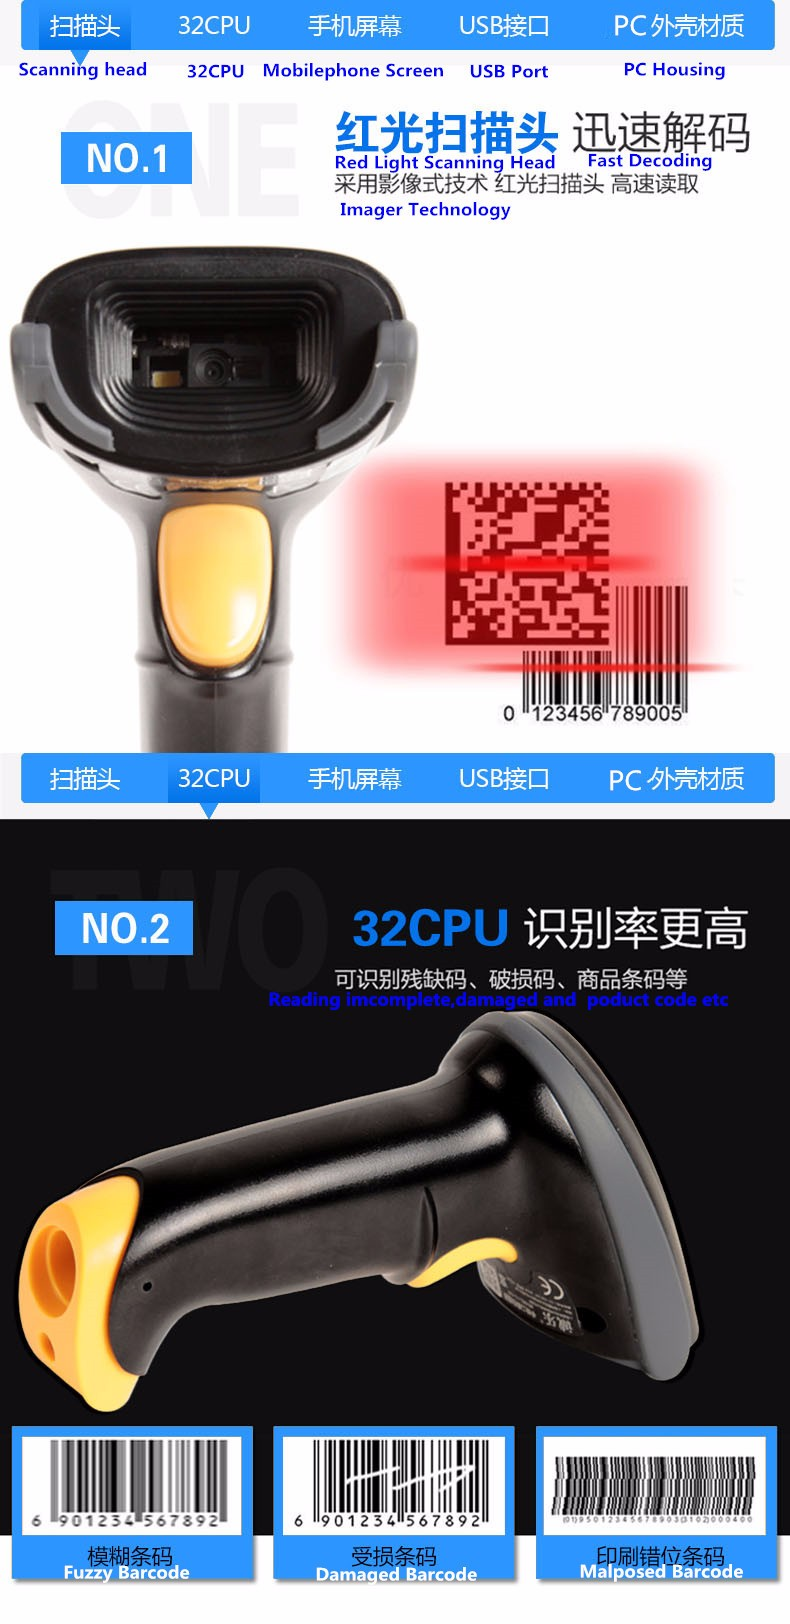 SuperLead 2200 high cost-effective POS QR Code Scanner USB RS232 Manufacturer 2D barcode scanner High quality